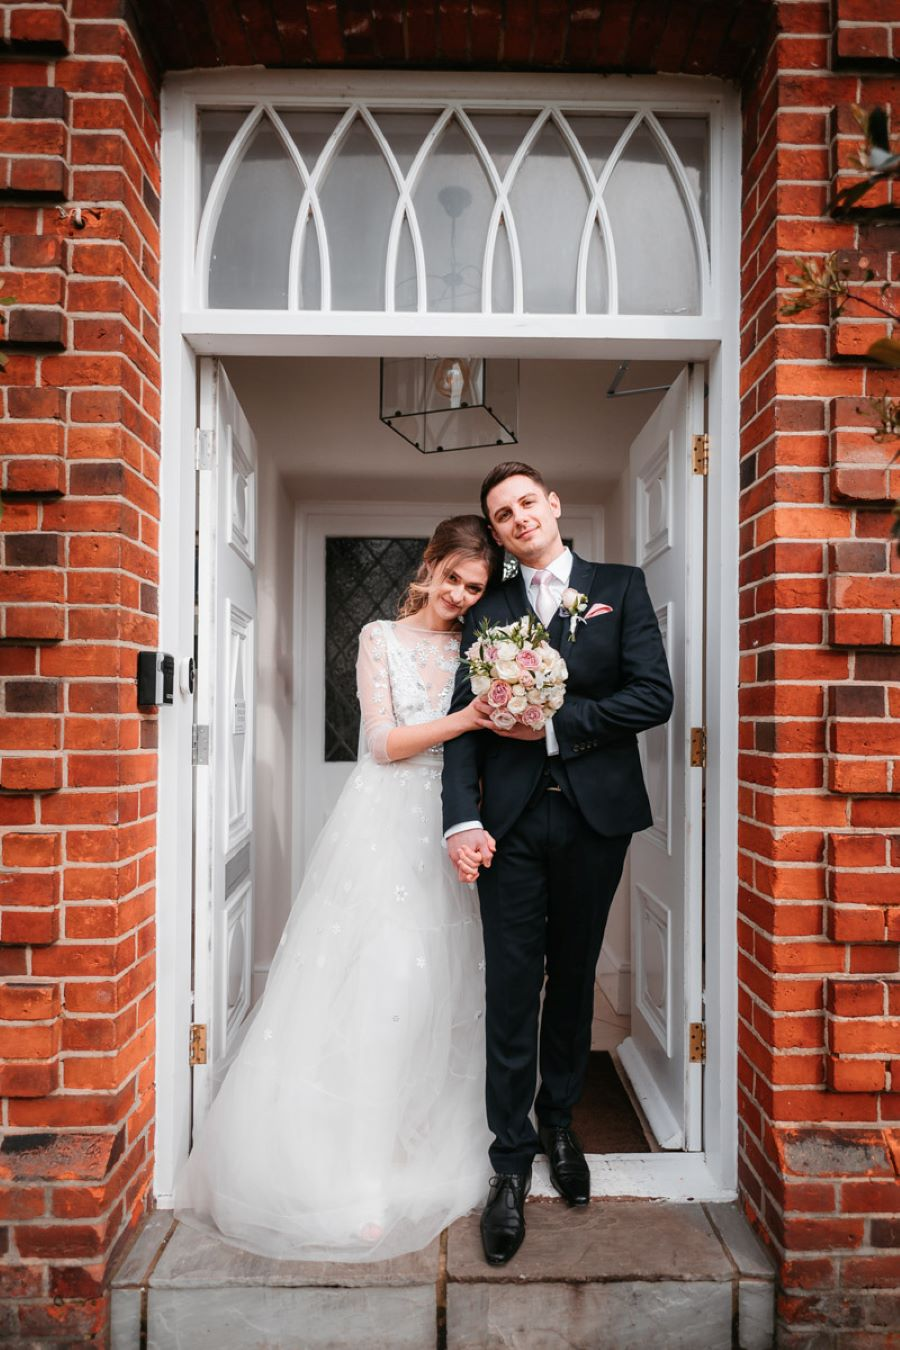 Light and romance with natural blush tones - wedding ideas from Downham Hall. Photographer credit Magical Moments Photography (37)